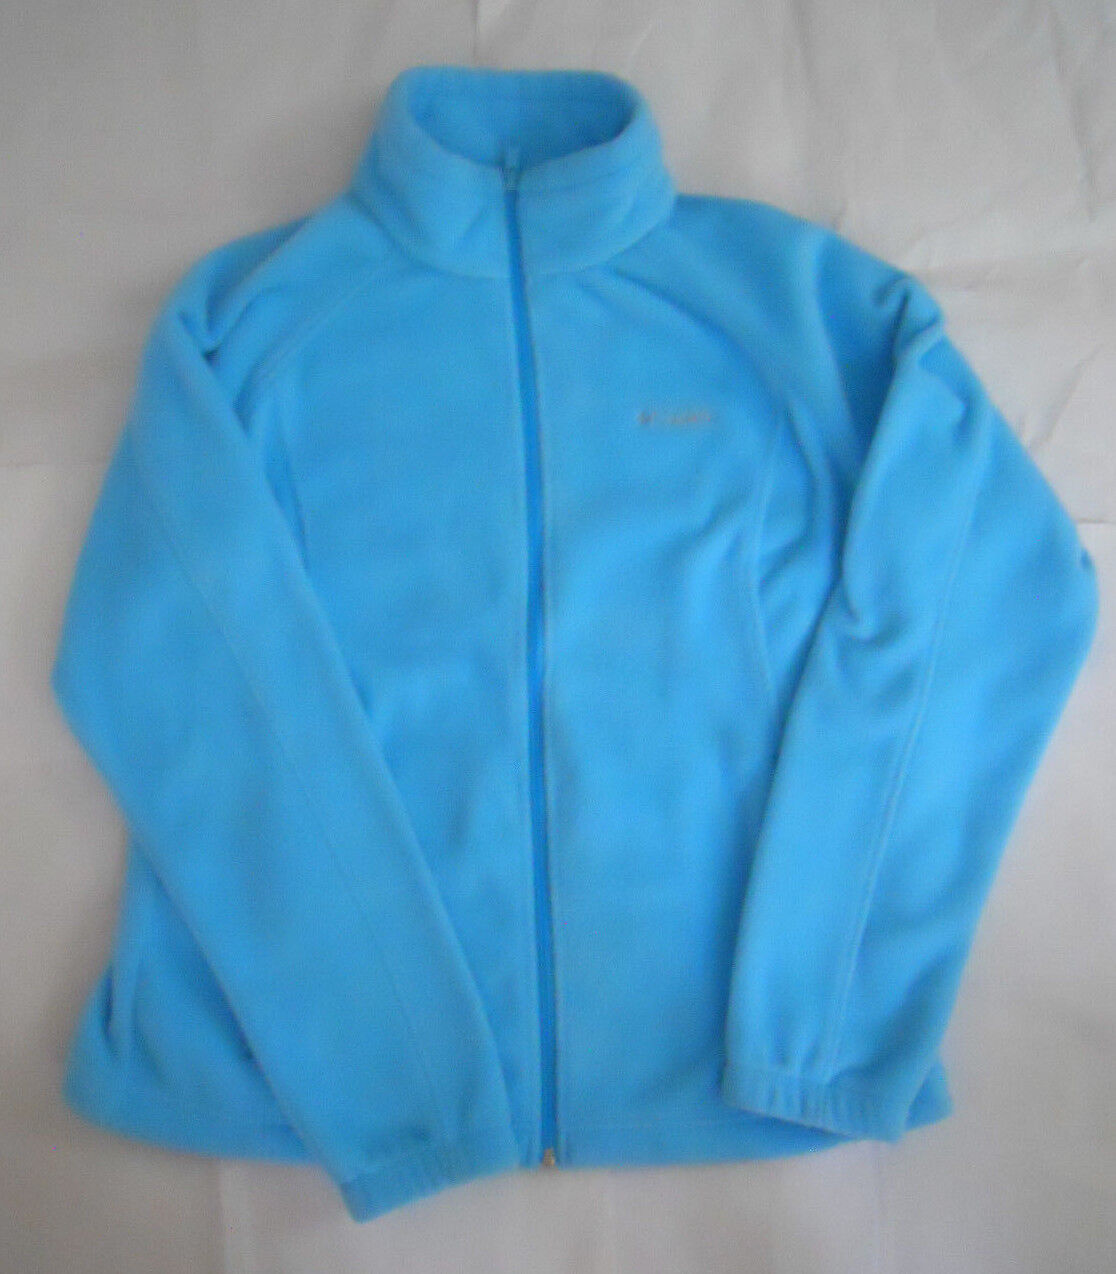 Columbia Full Zip Fleece Light bluee Size XL Women's new